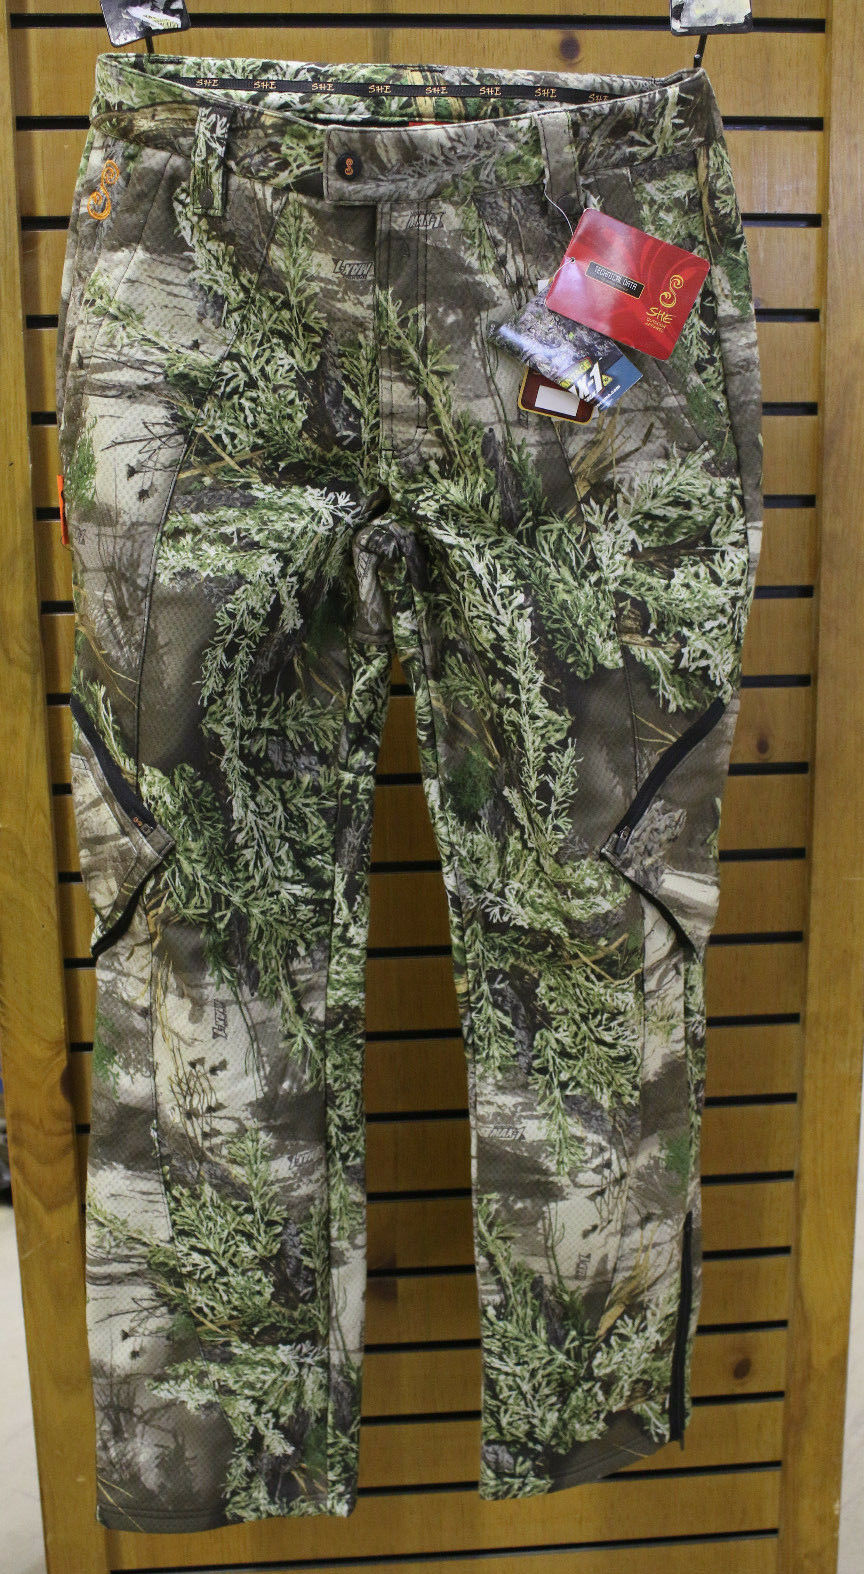 New SHE C2 Flex Fit MAX-1 CAMO Outdoor Apparel Hunting Pants WOMENS SIZE LG.